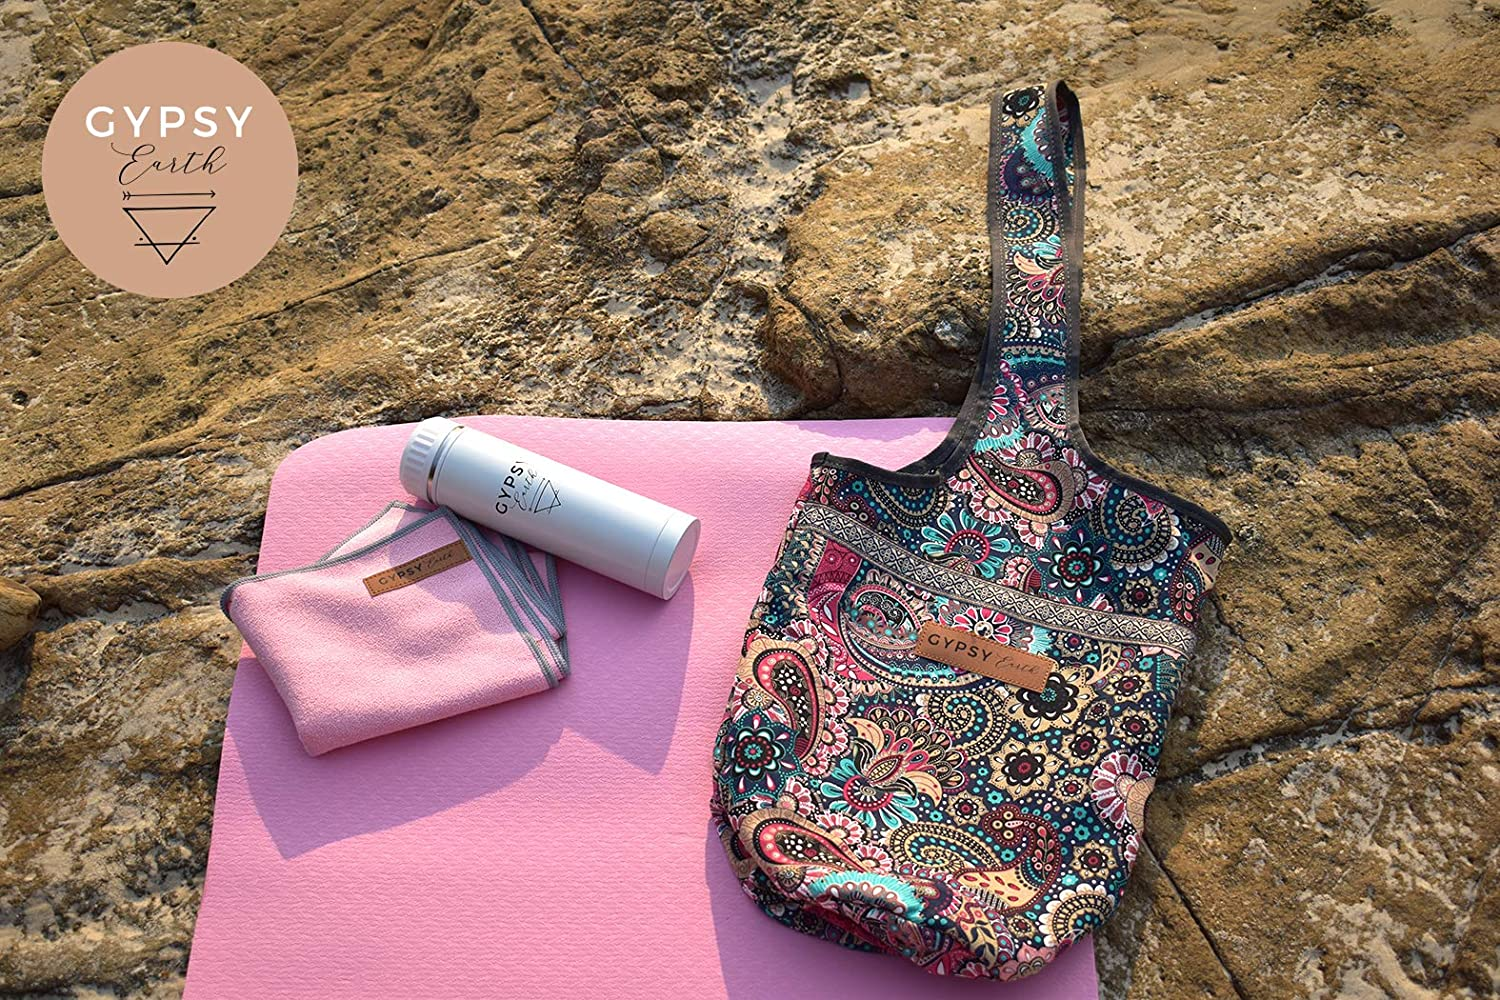 Gypsy Earth Yoga Carry Bag with Yoga mat with Free Sustainable Water Bottle and Micro Fiber Towel Multi-Functional Usage Yoga Gift Set Yoga Tote Bag Fit Most Size Mats Yoga Starter Kit